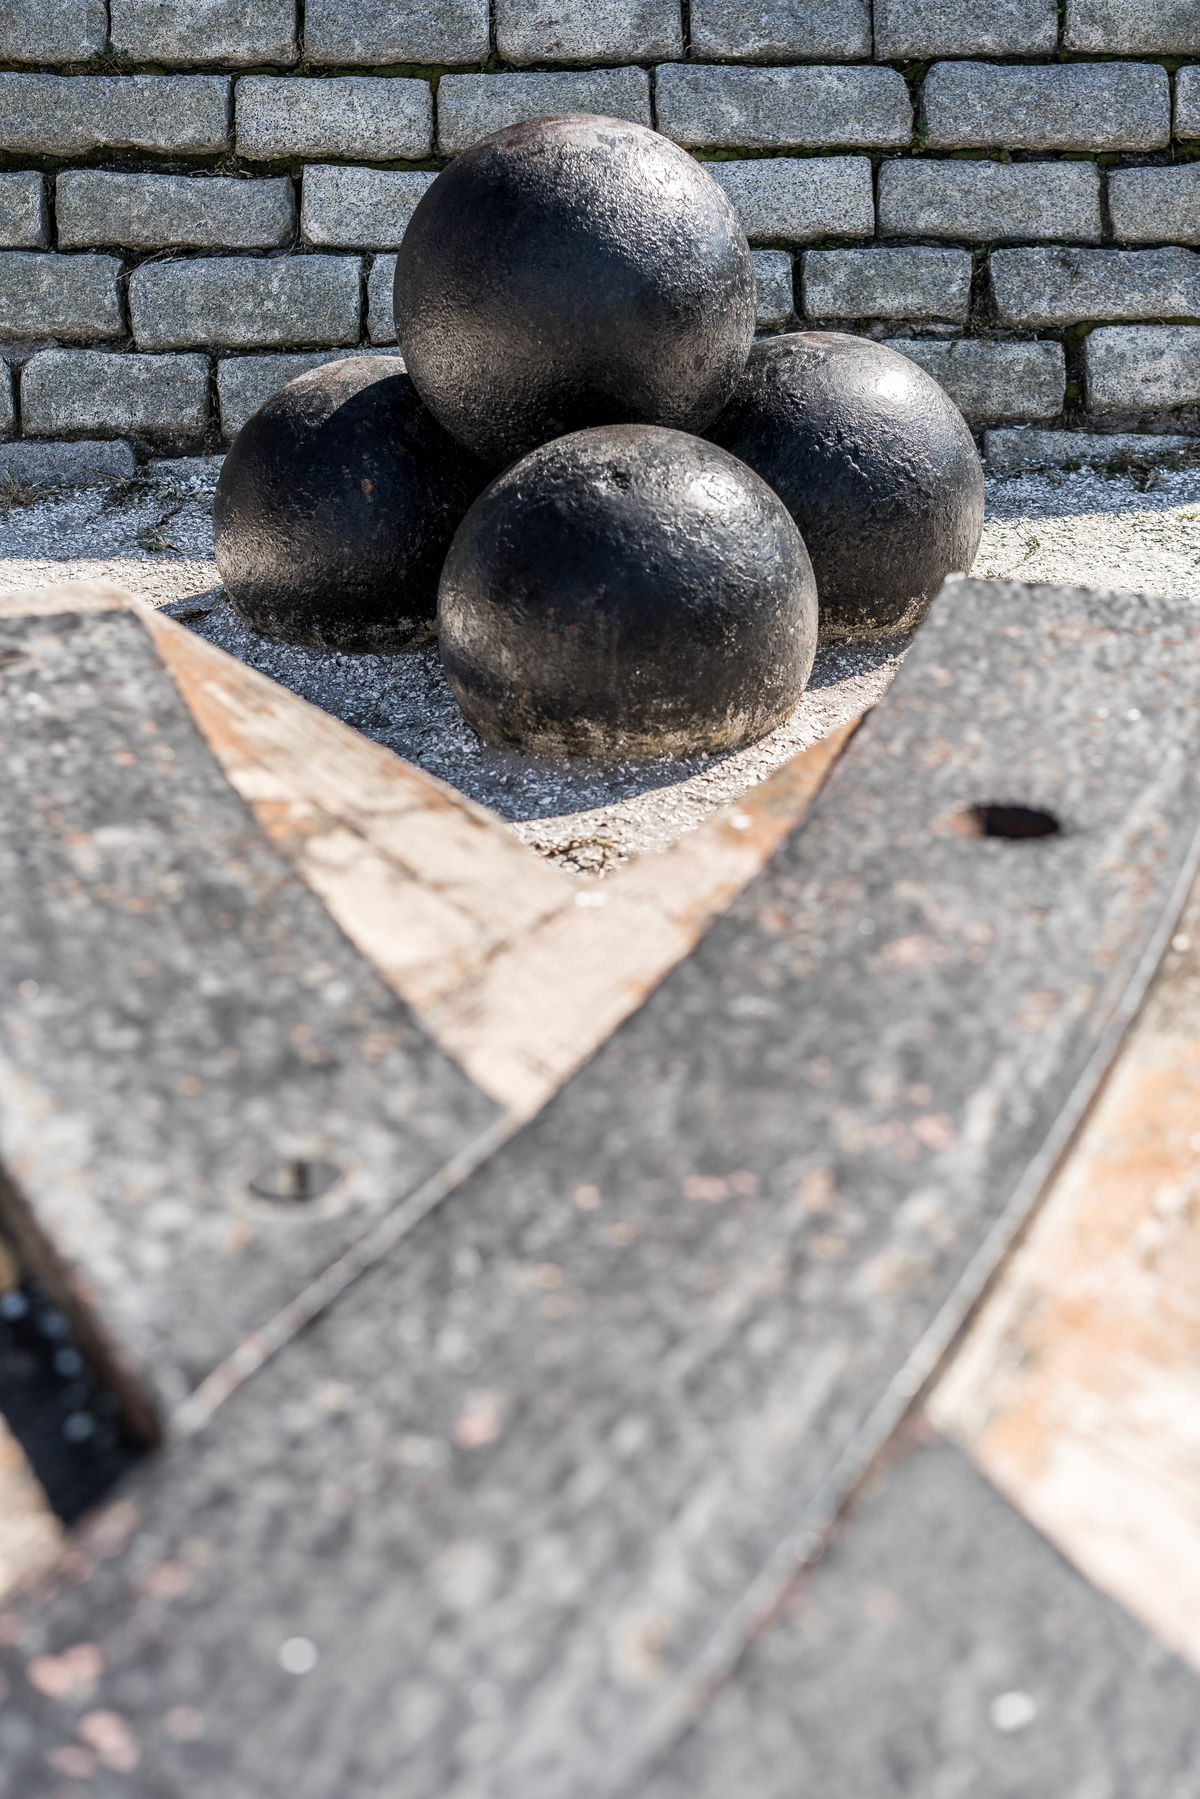 Cannonball No People Outdoors Industrial Fort Sumter Fort Moultrie South Carolina American Civil War Artillery Metalwork Artillery Track industrial Industrial Photography Grey Color Basic Shapes No People Outdoors History Through The Lens  Historycal Place Historical Place Iron And Steel